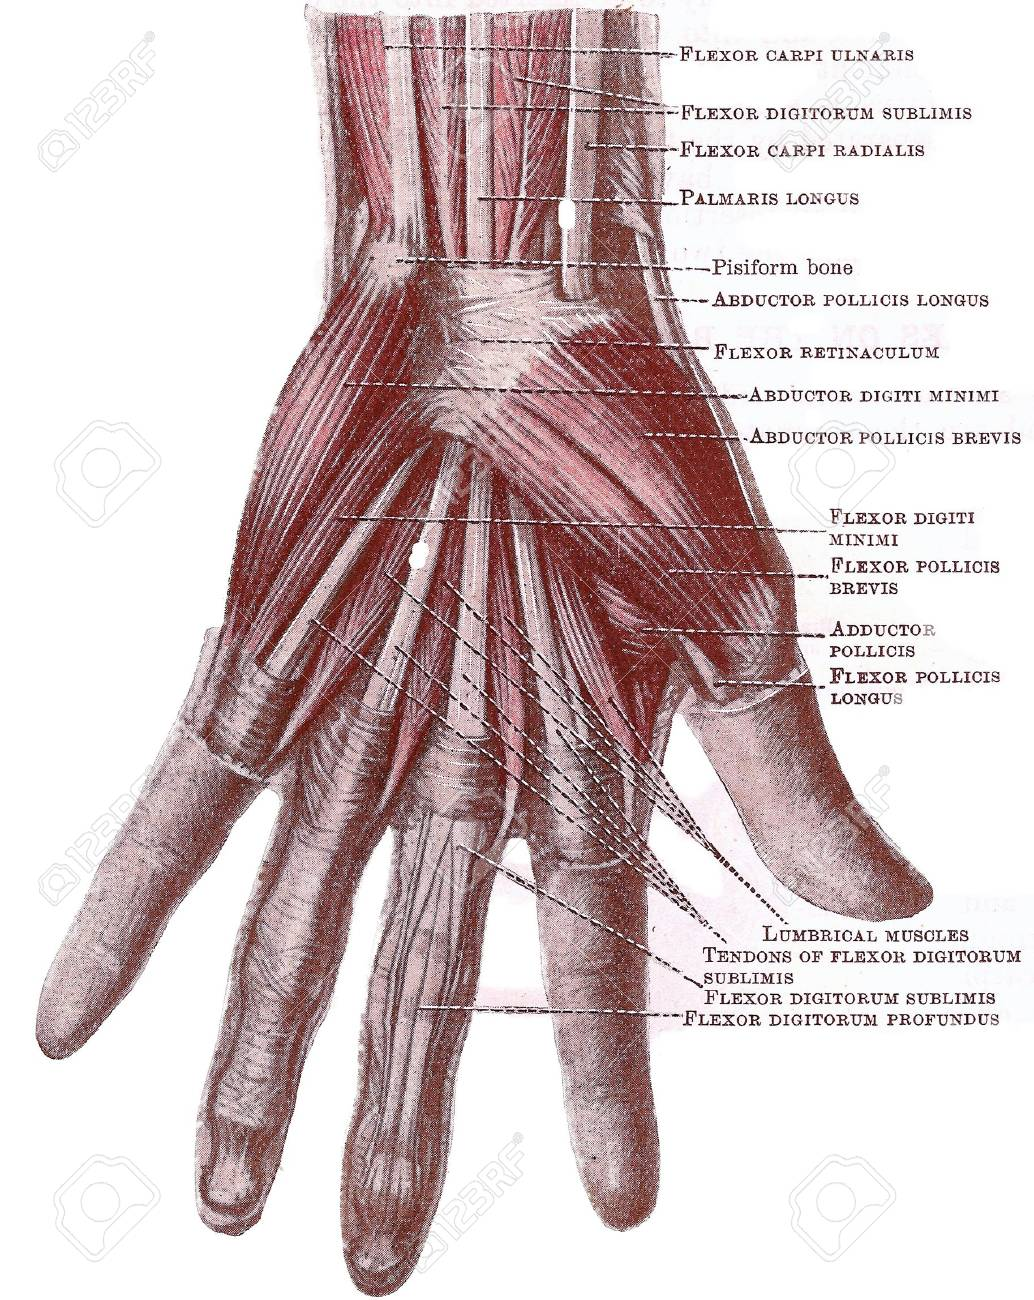 Dissection Of The Hand - Superficial Muscles And Tnedons In The ...